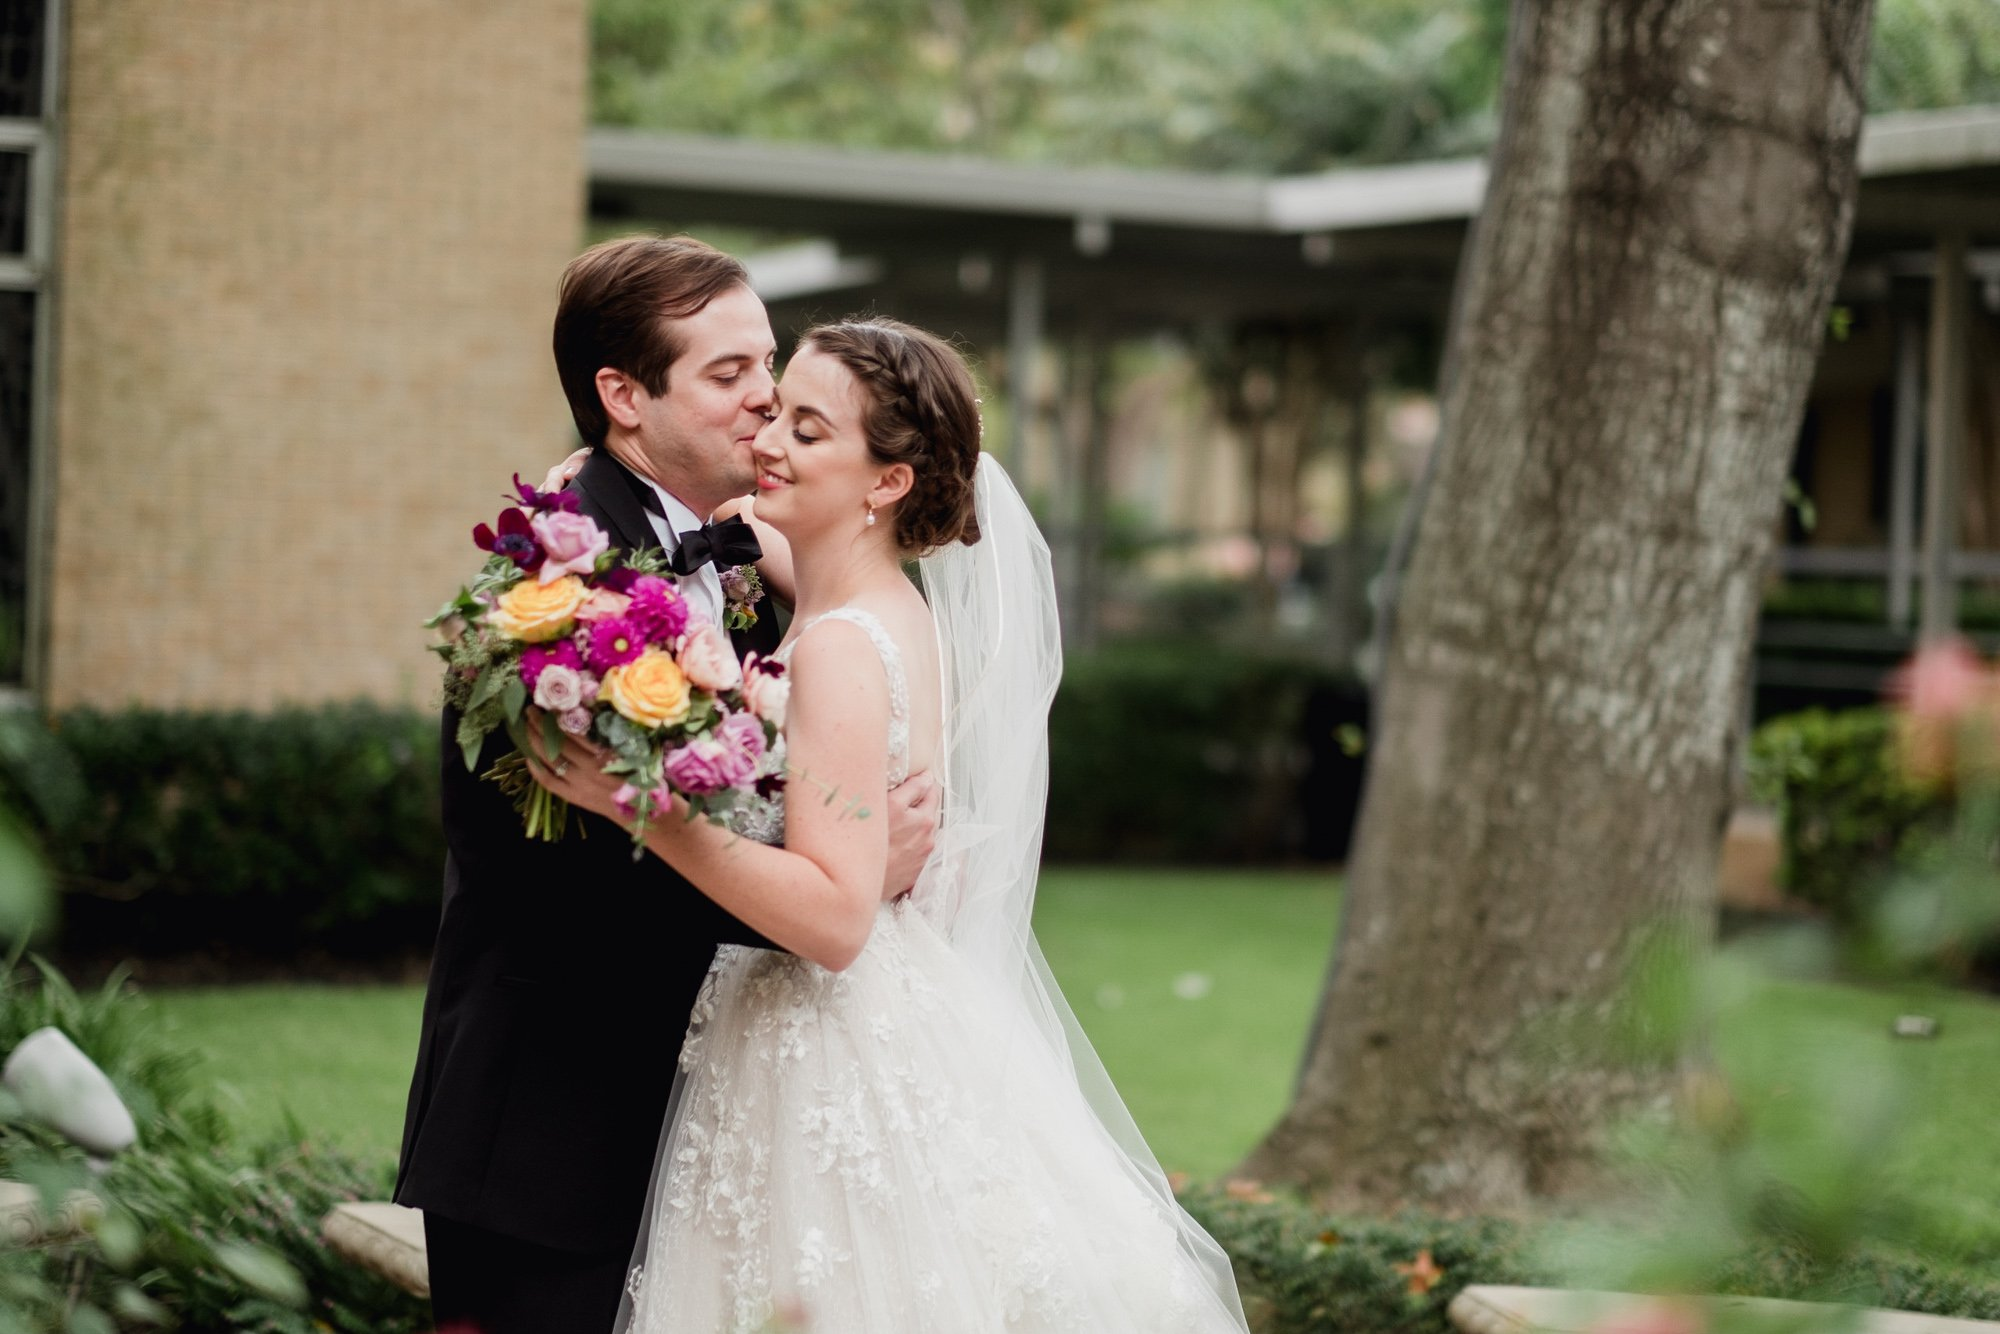 catholic wedding with first look, first look at st. louis king of france church, austin downtown wedding, emotional wedding photography in austin texas, kiss on the cheek during a couples' first look at a colorful austin weding